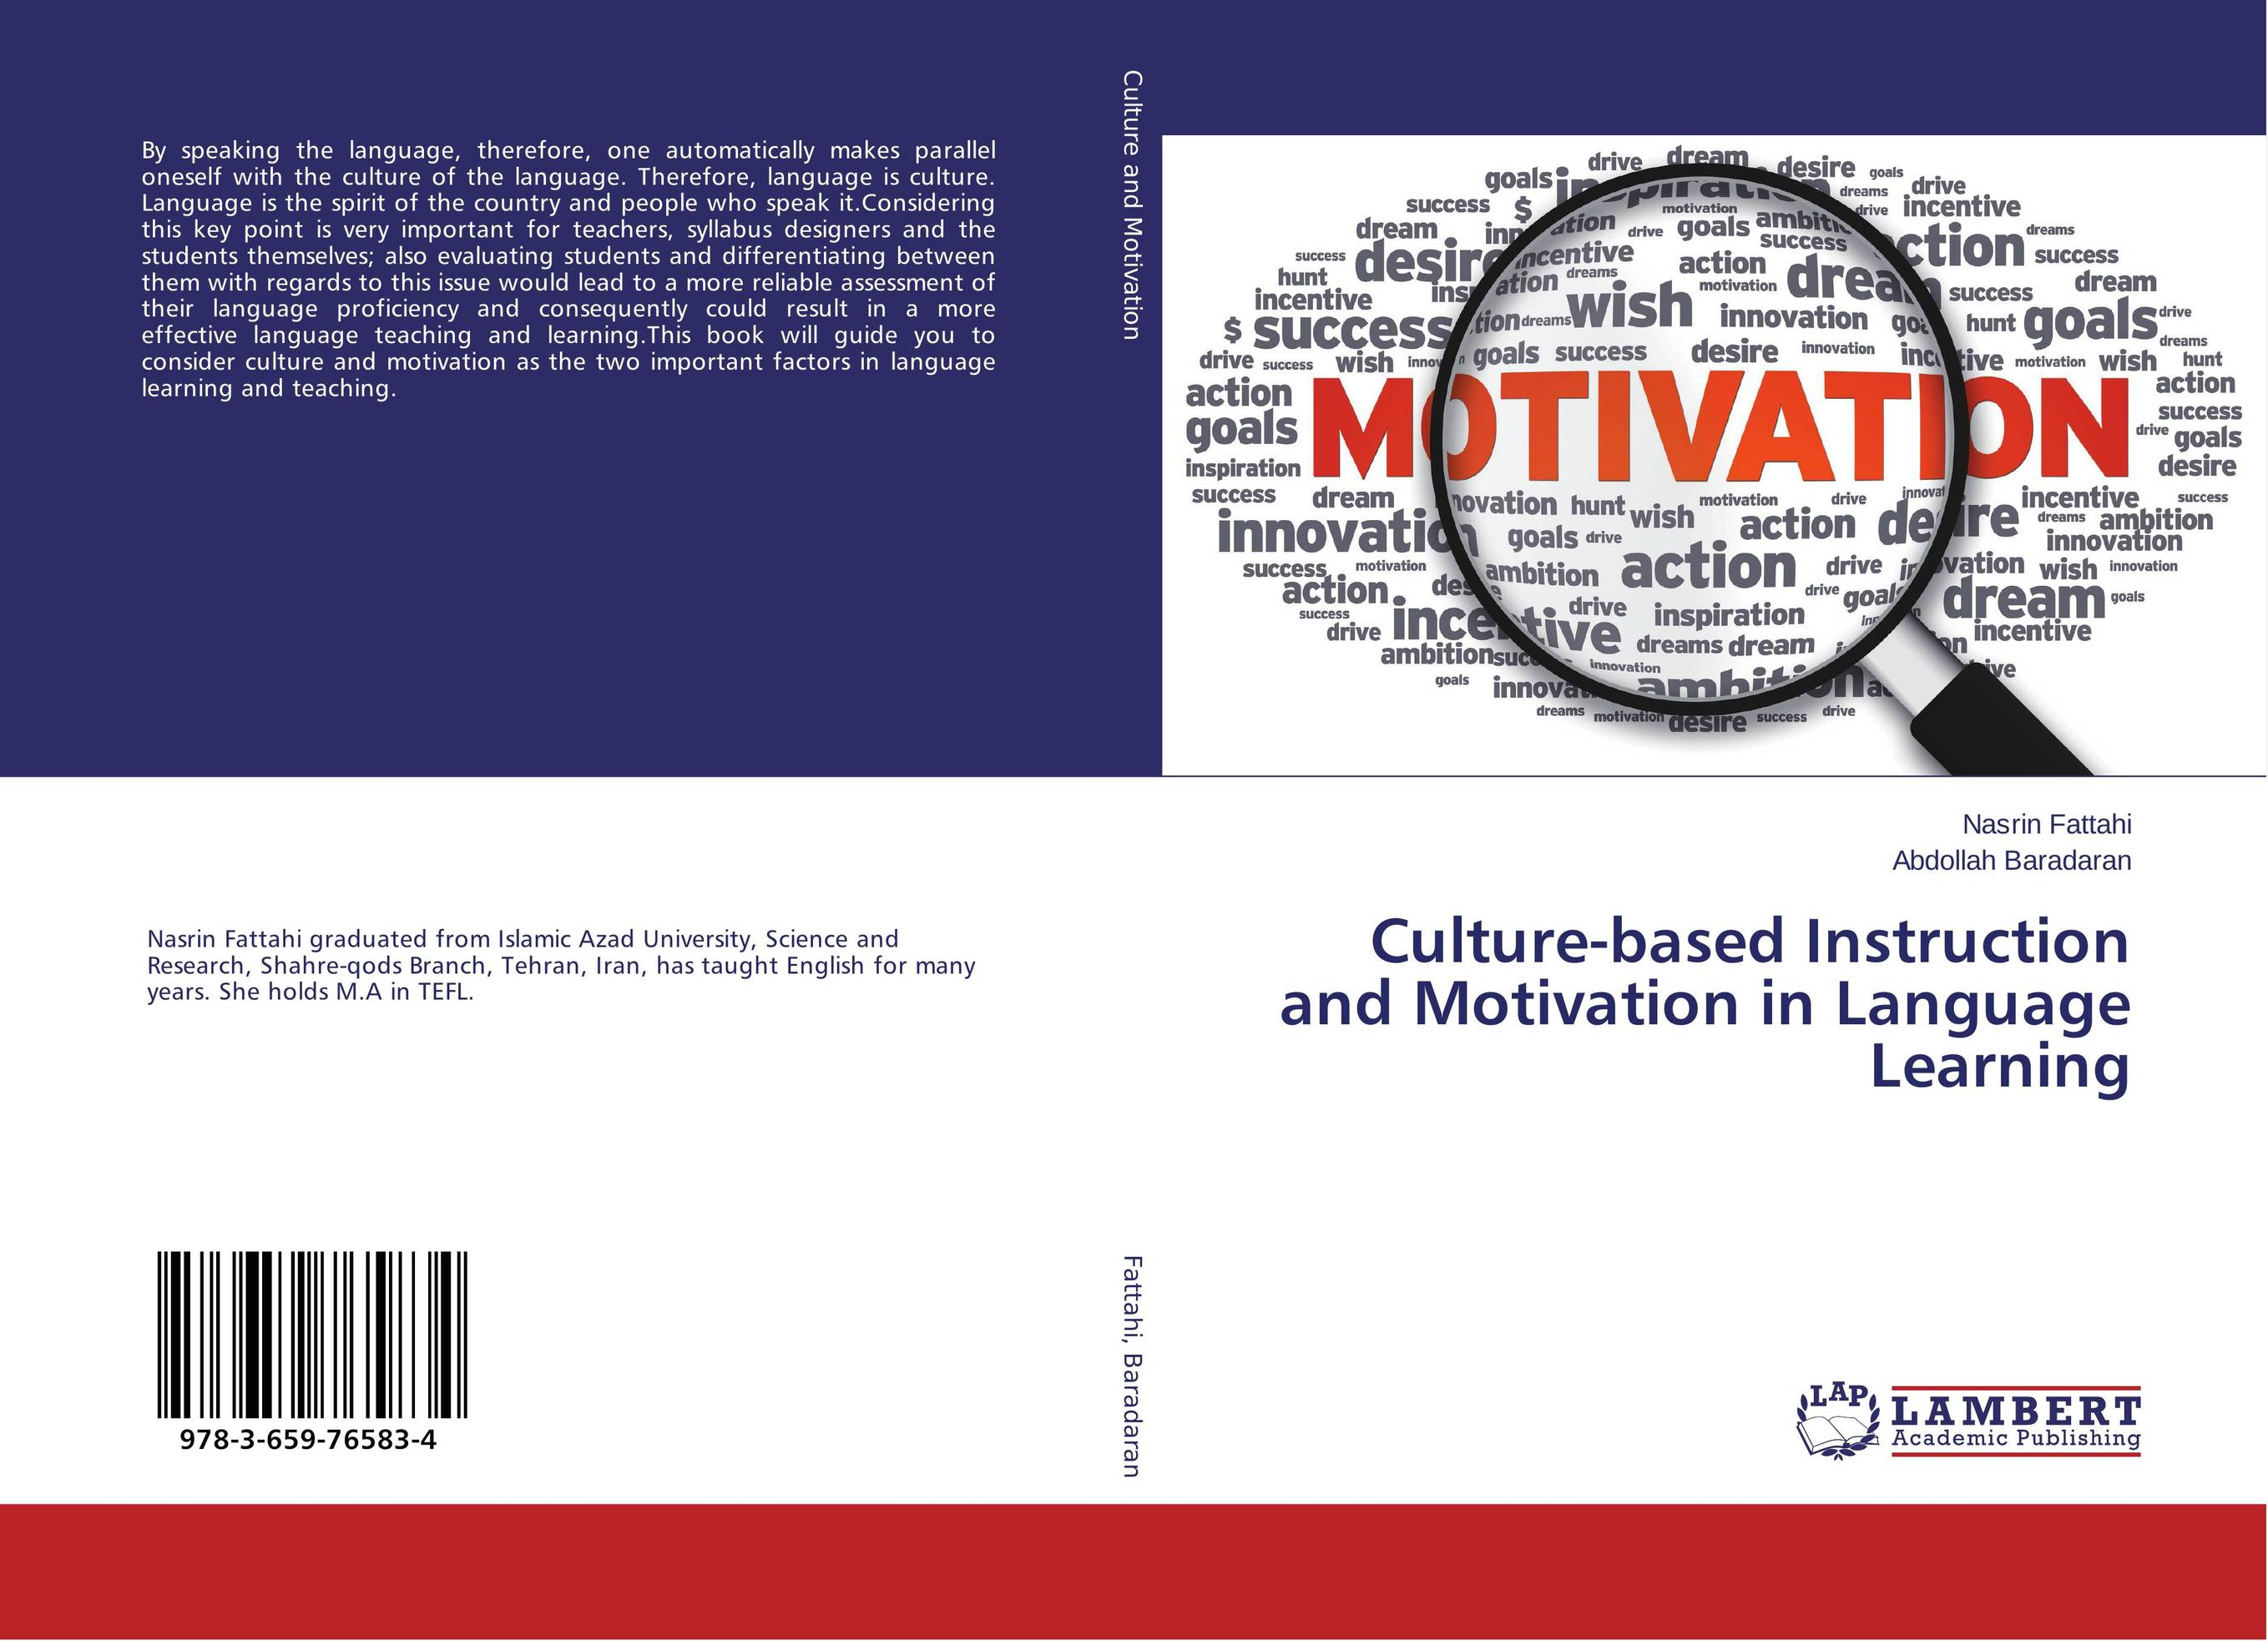 Culture-based Instruction and Motivation in Language Learning e hutchins culture and inference – a trobriand case study